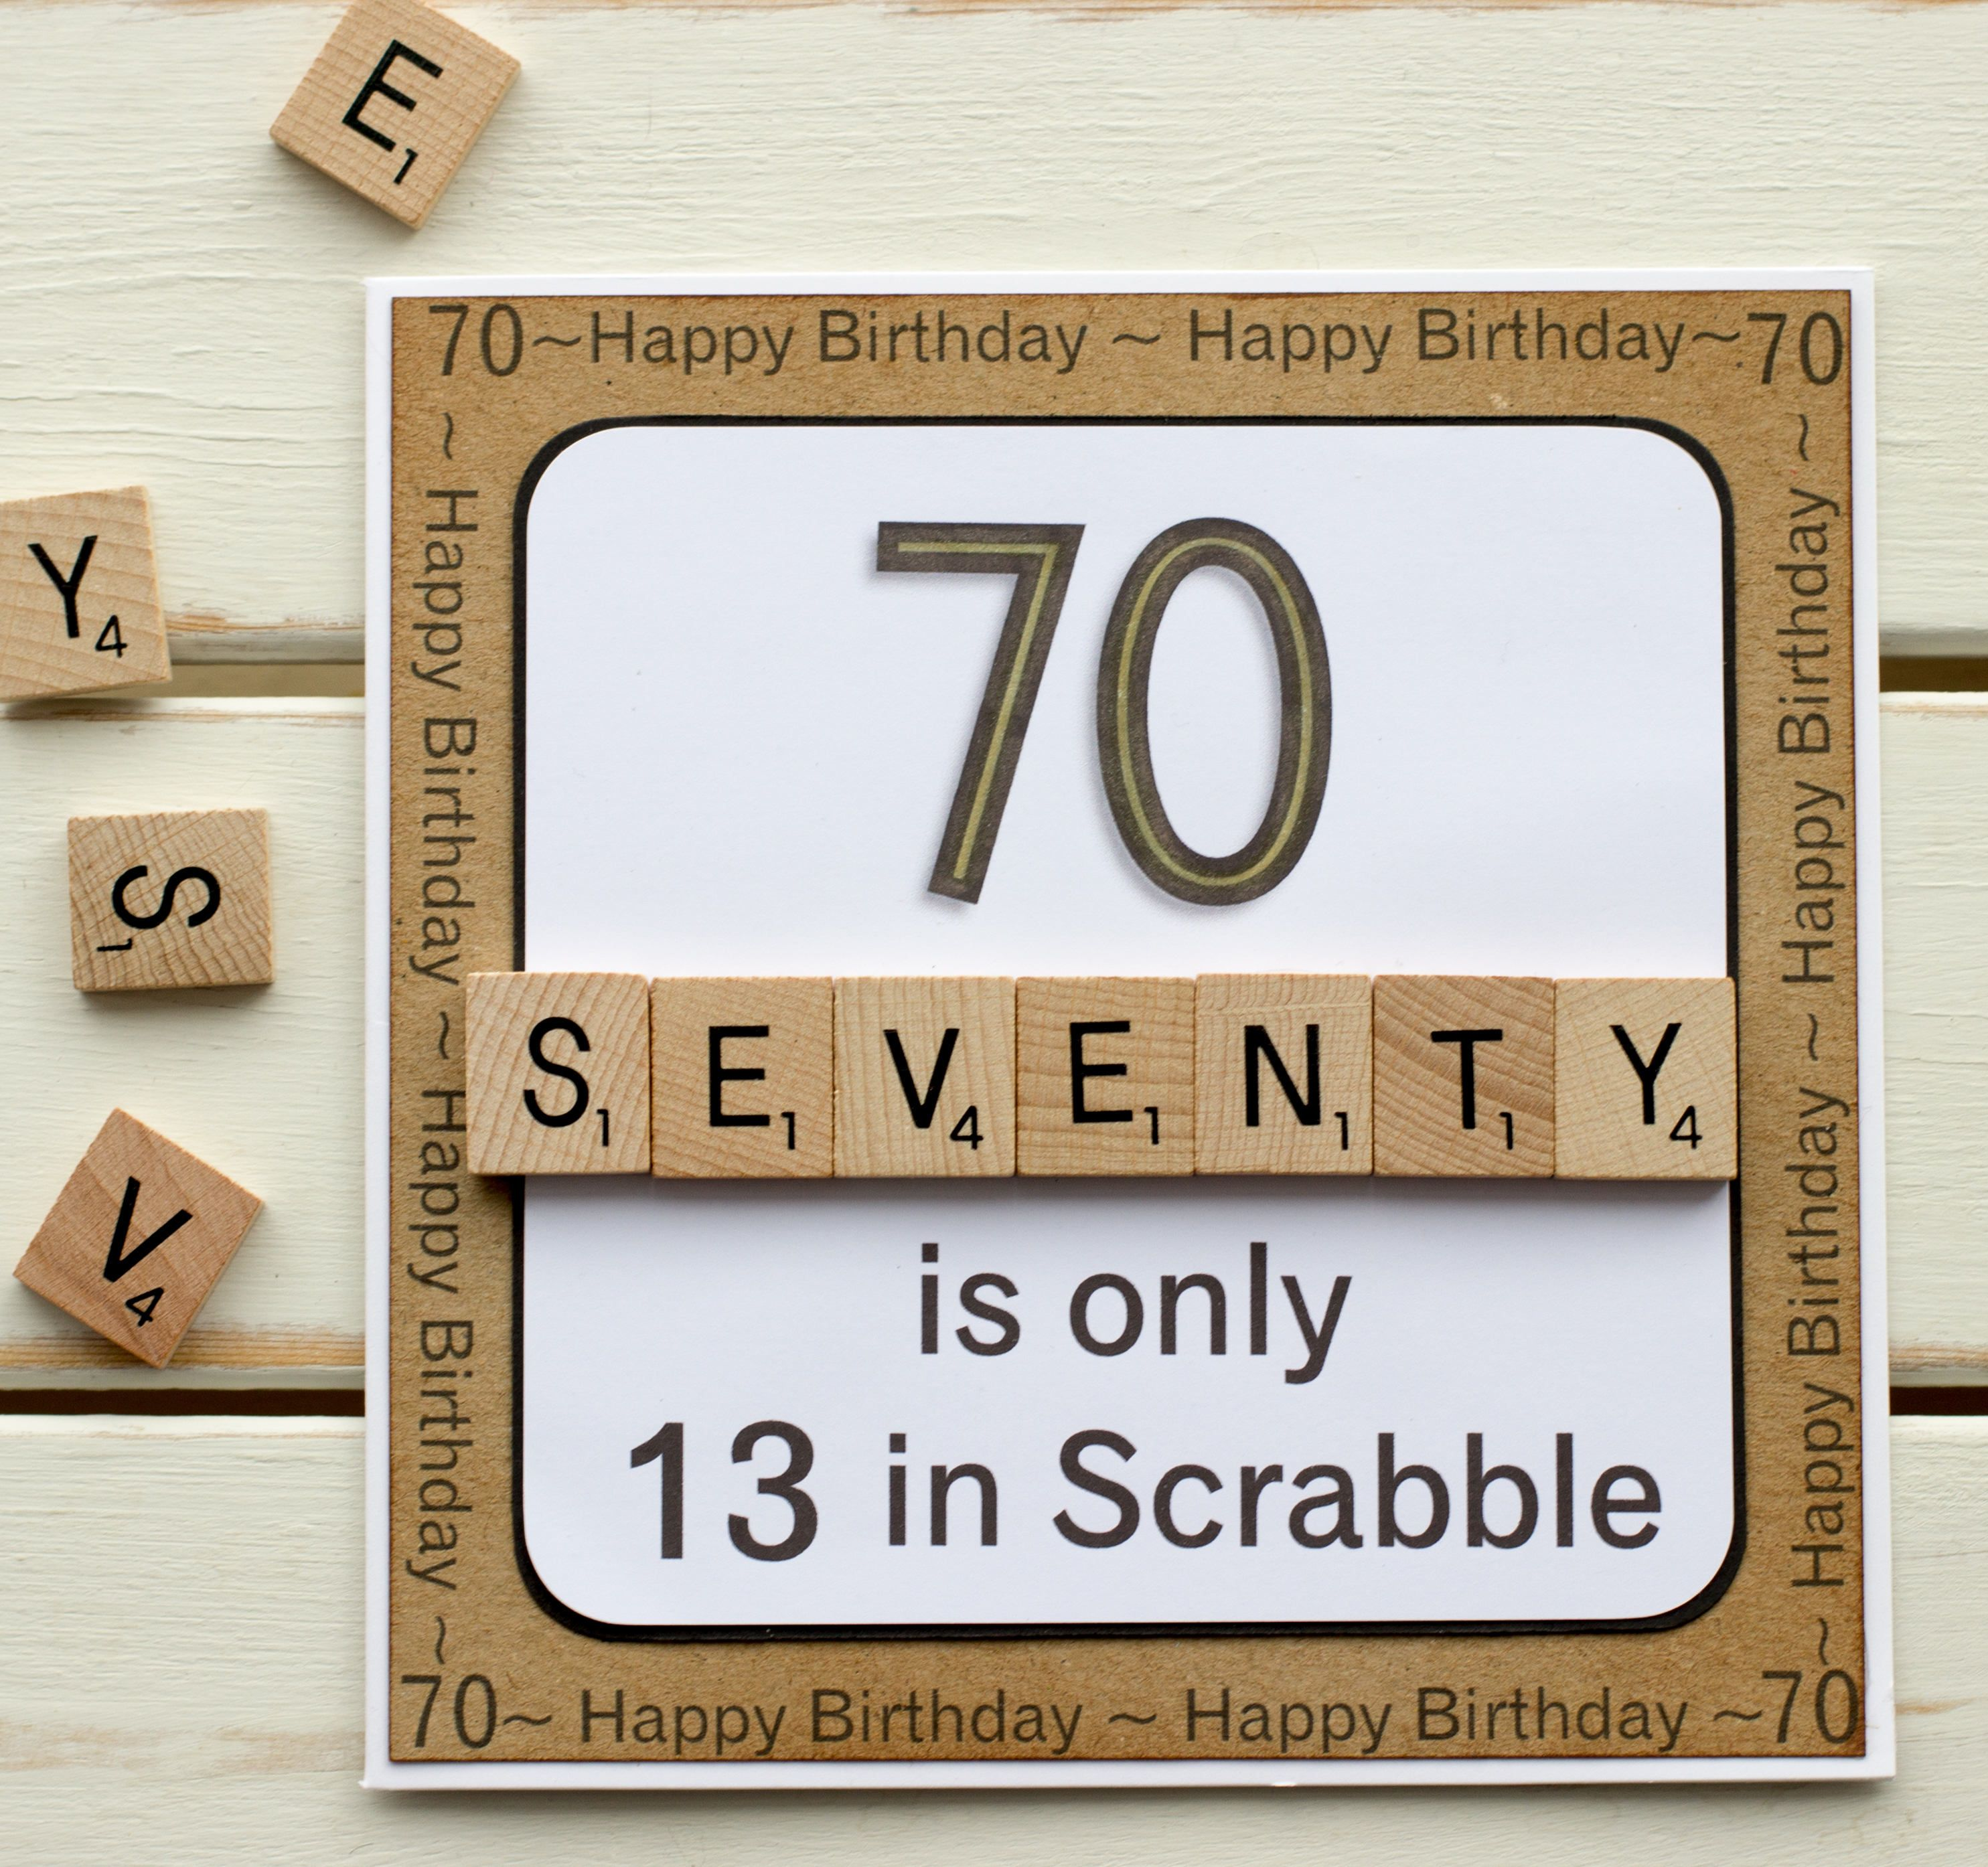 70 Is Only 13 In Scrabble Handmade 70th Birthday Card Etsy 70th Birthday Card 70th Birthday Birthday Cards For Men